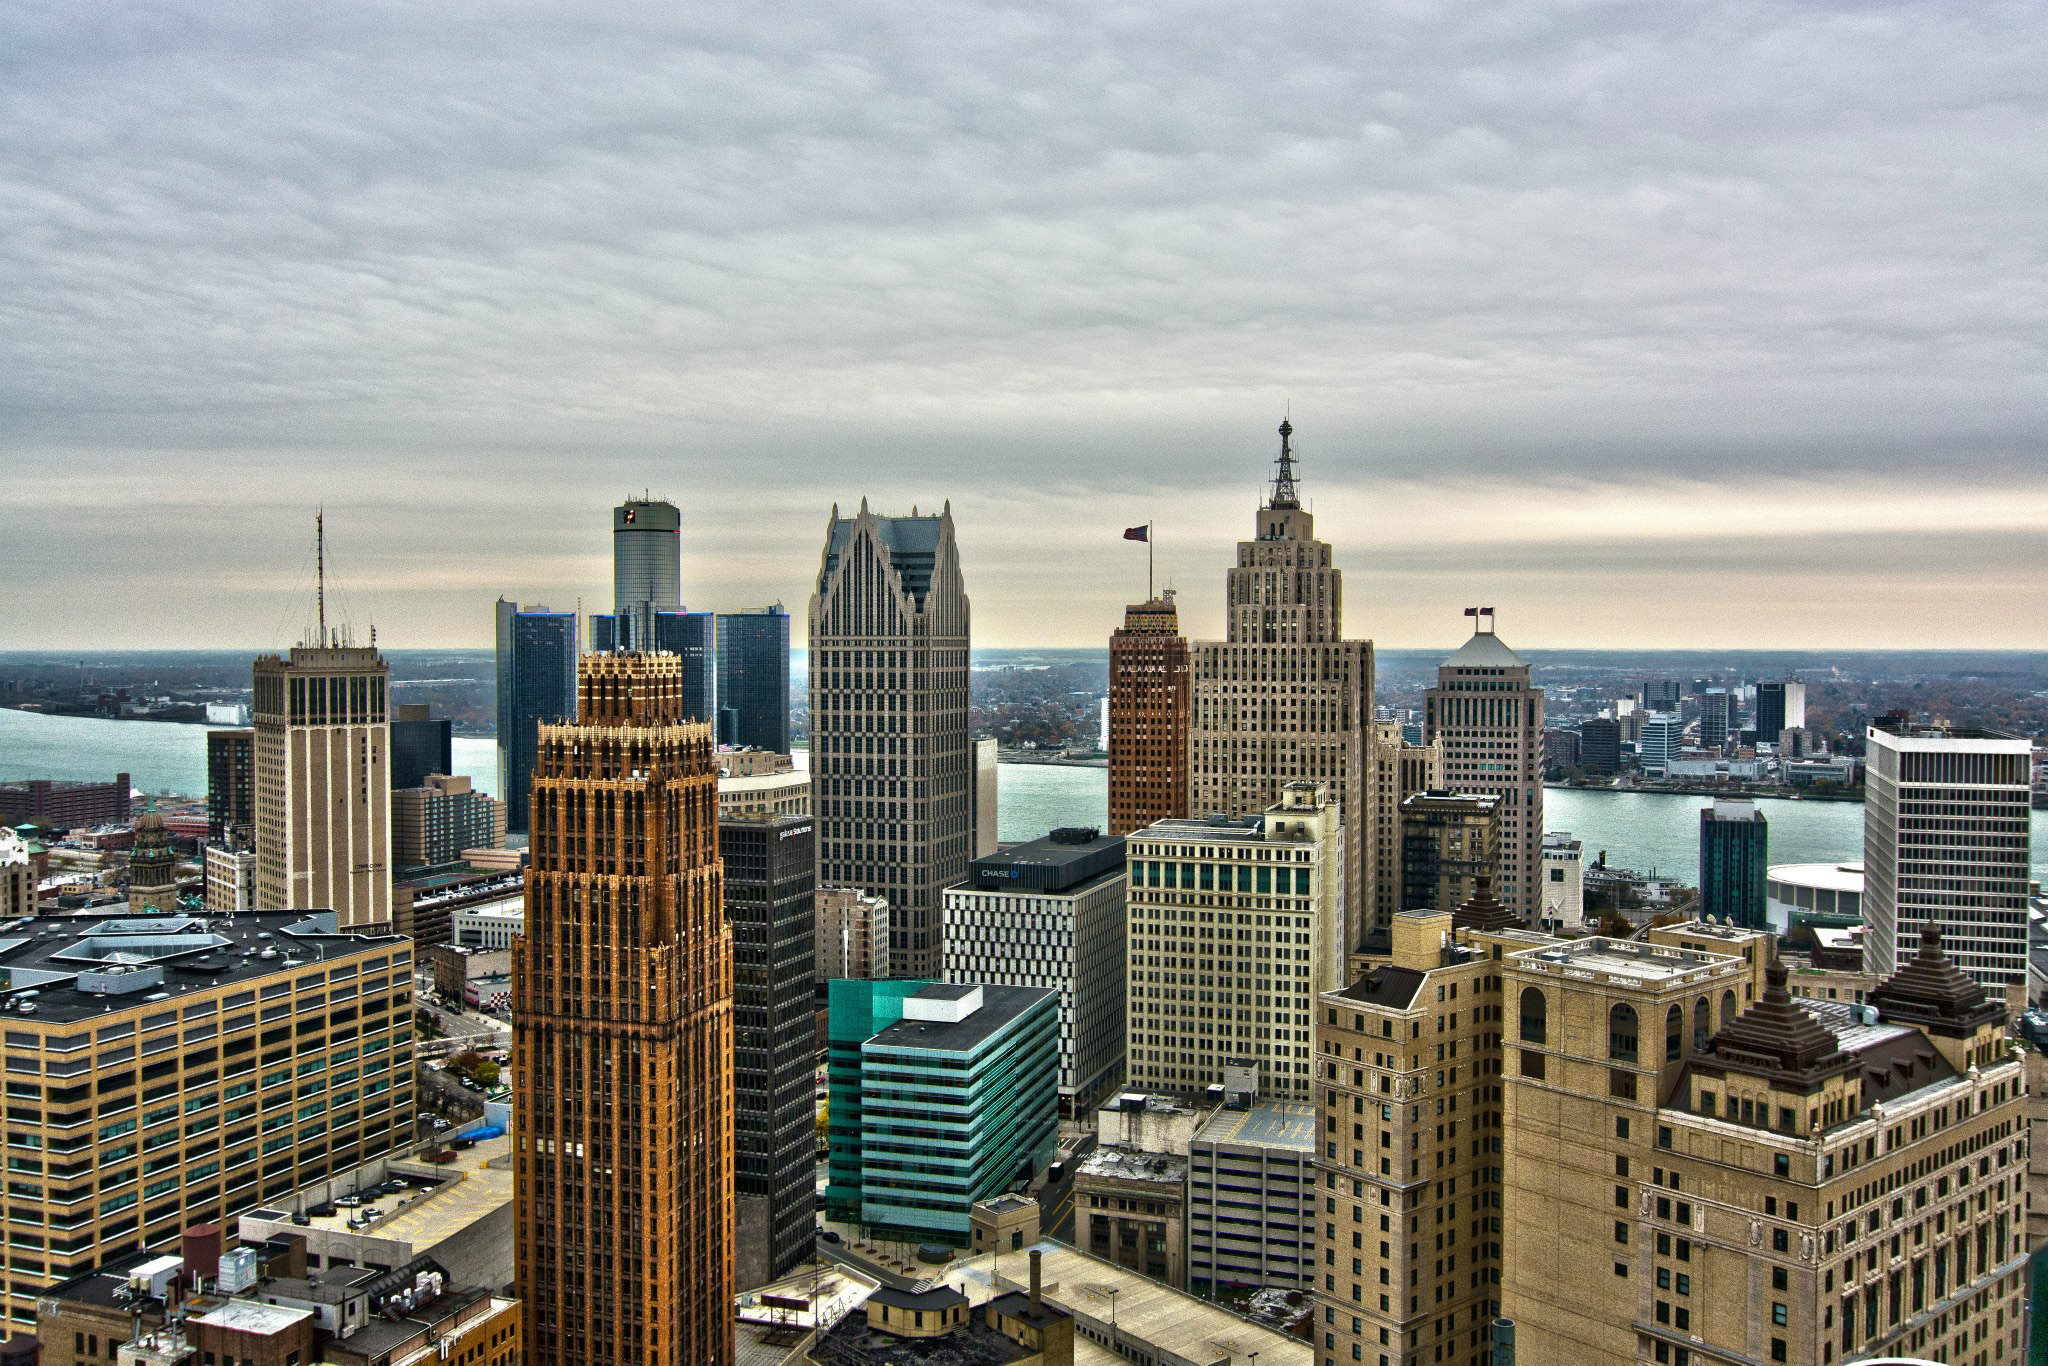 Detroit's history as a center of design reinvigorates its renewal